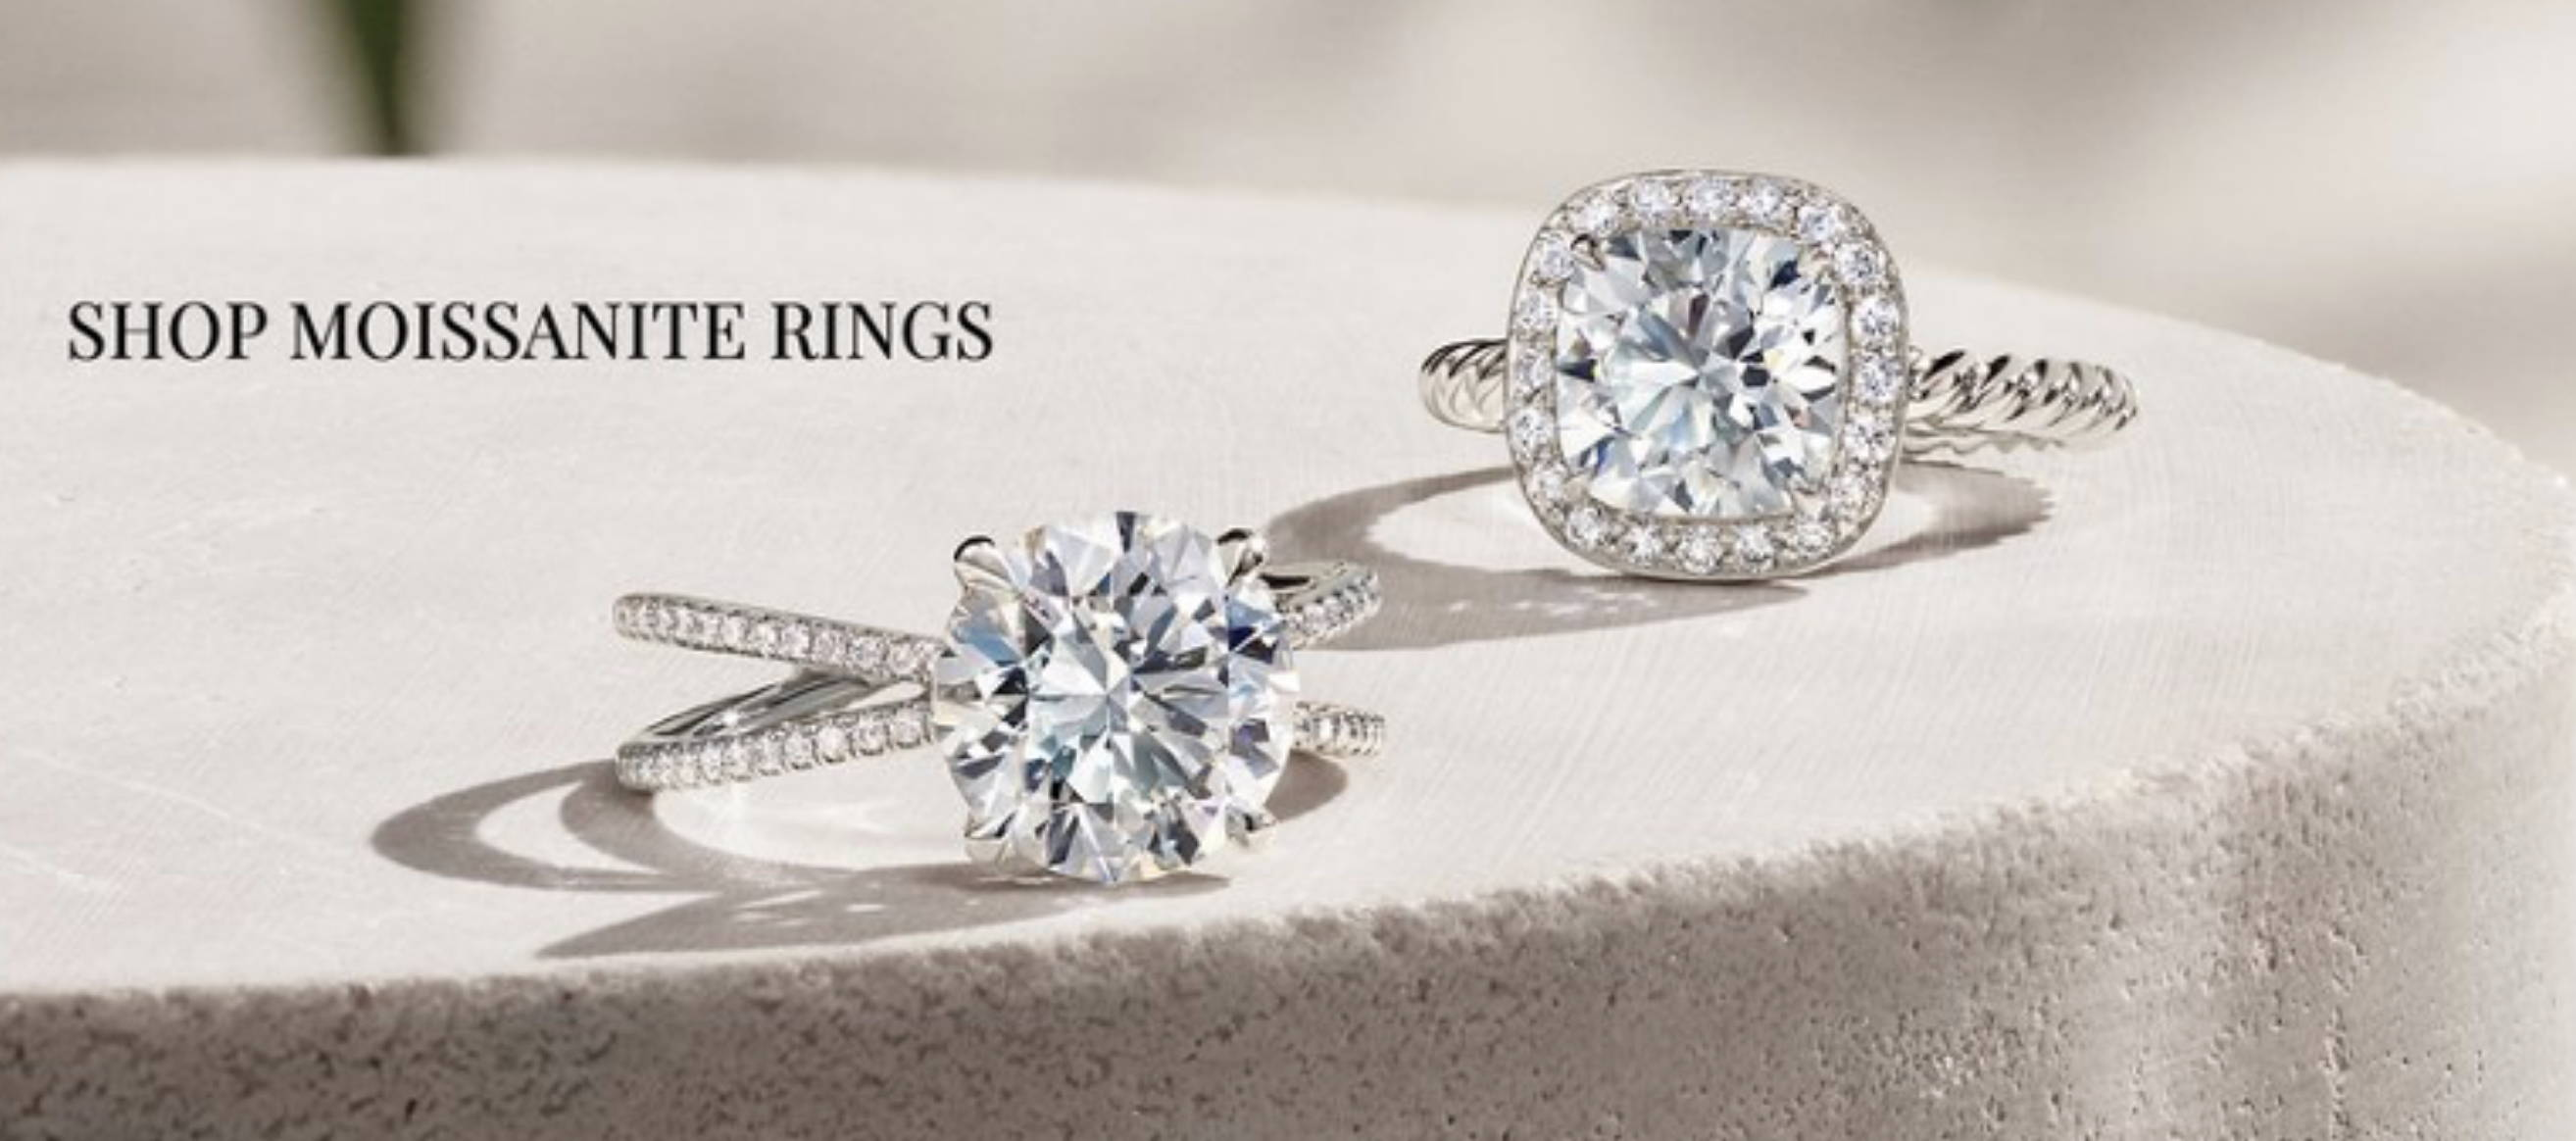 Moissanite  What is Moissanite and how does it compare to Diamond?